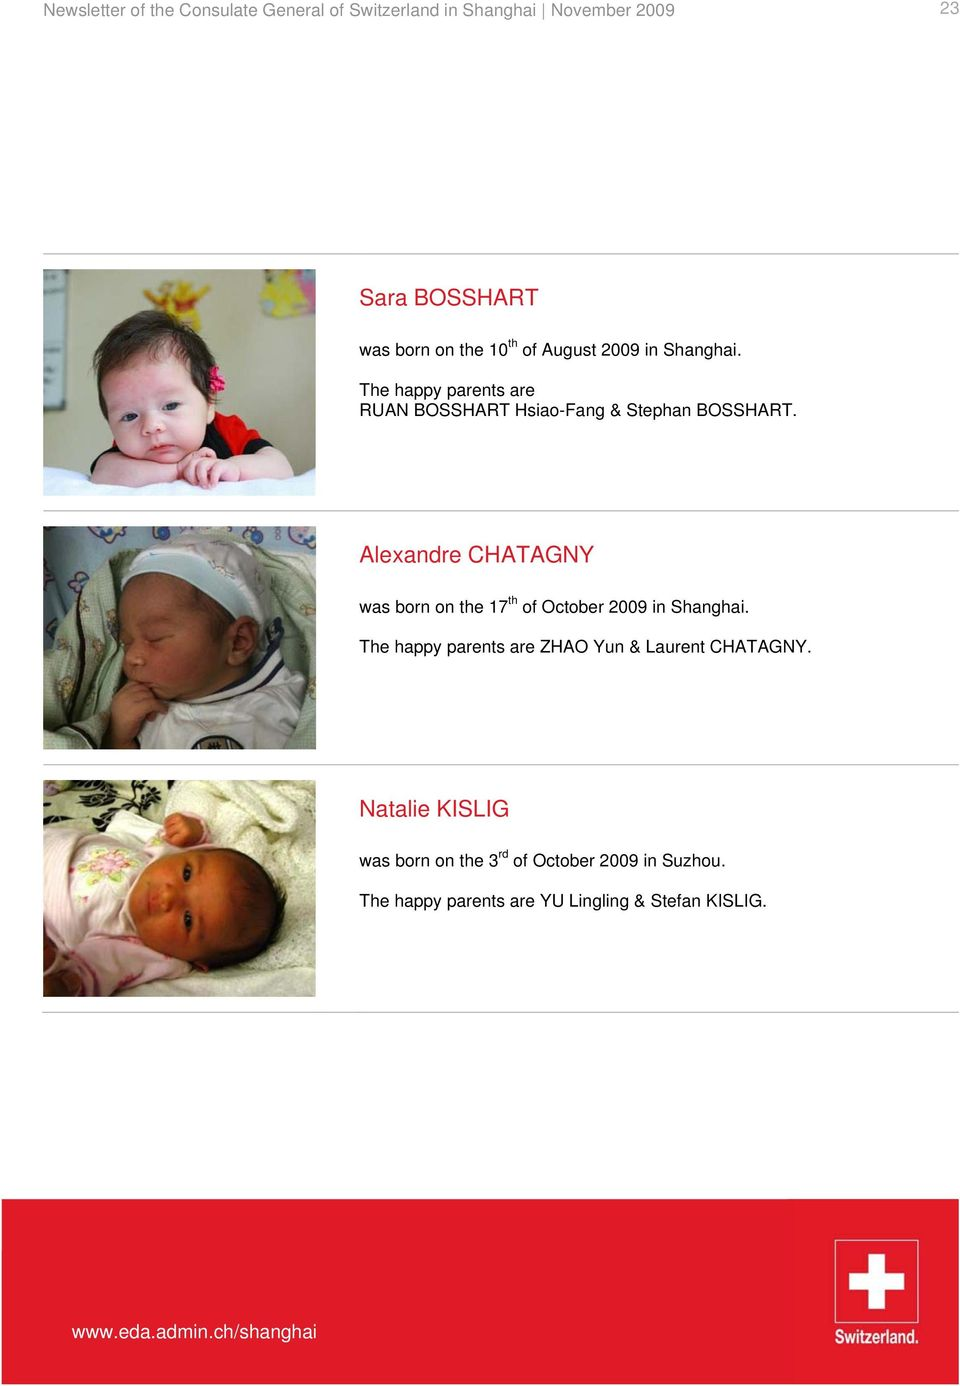 Alexandre CHATAGNY was born on the 17 th of October 2009 in Shanghai.